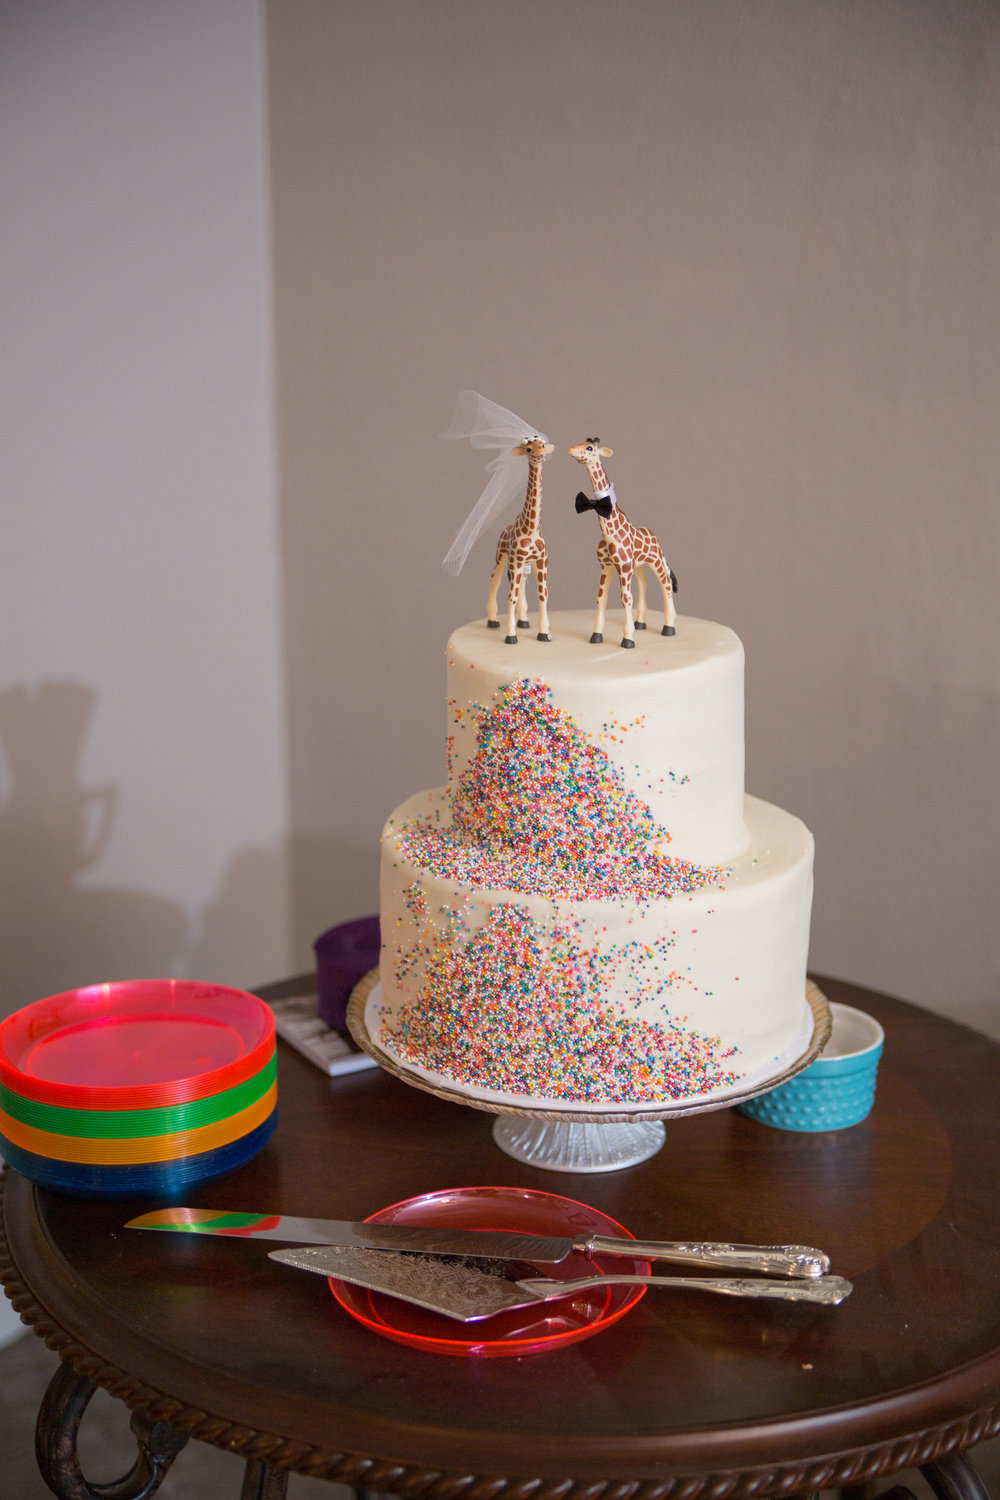 Our Fiesta funfetti cake from Bird Bakery!